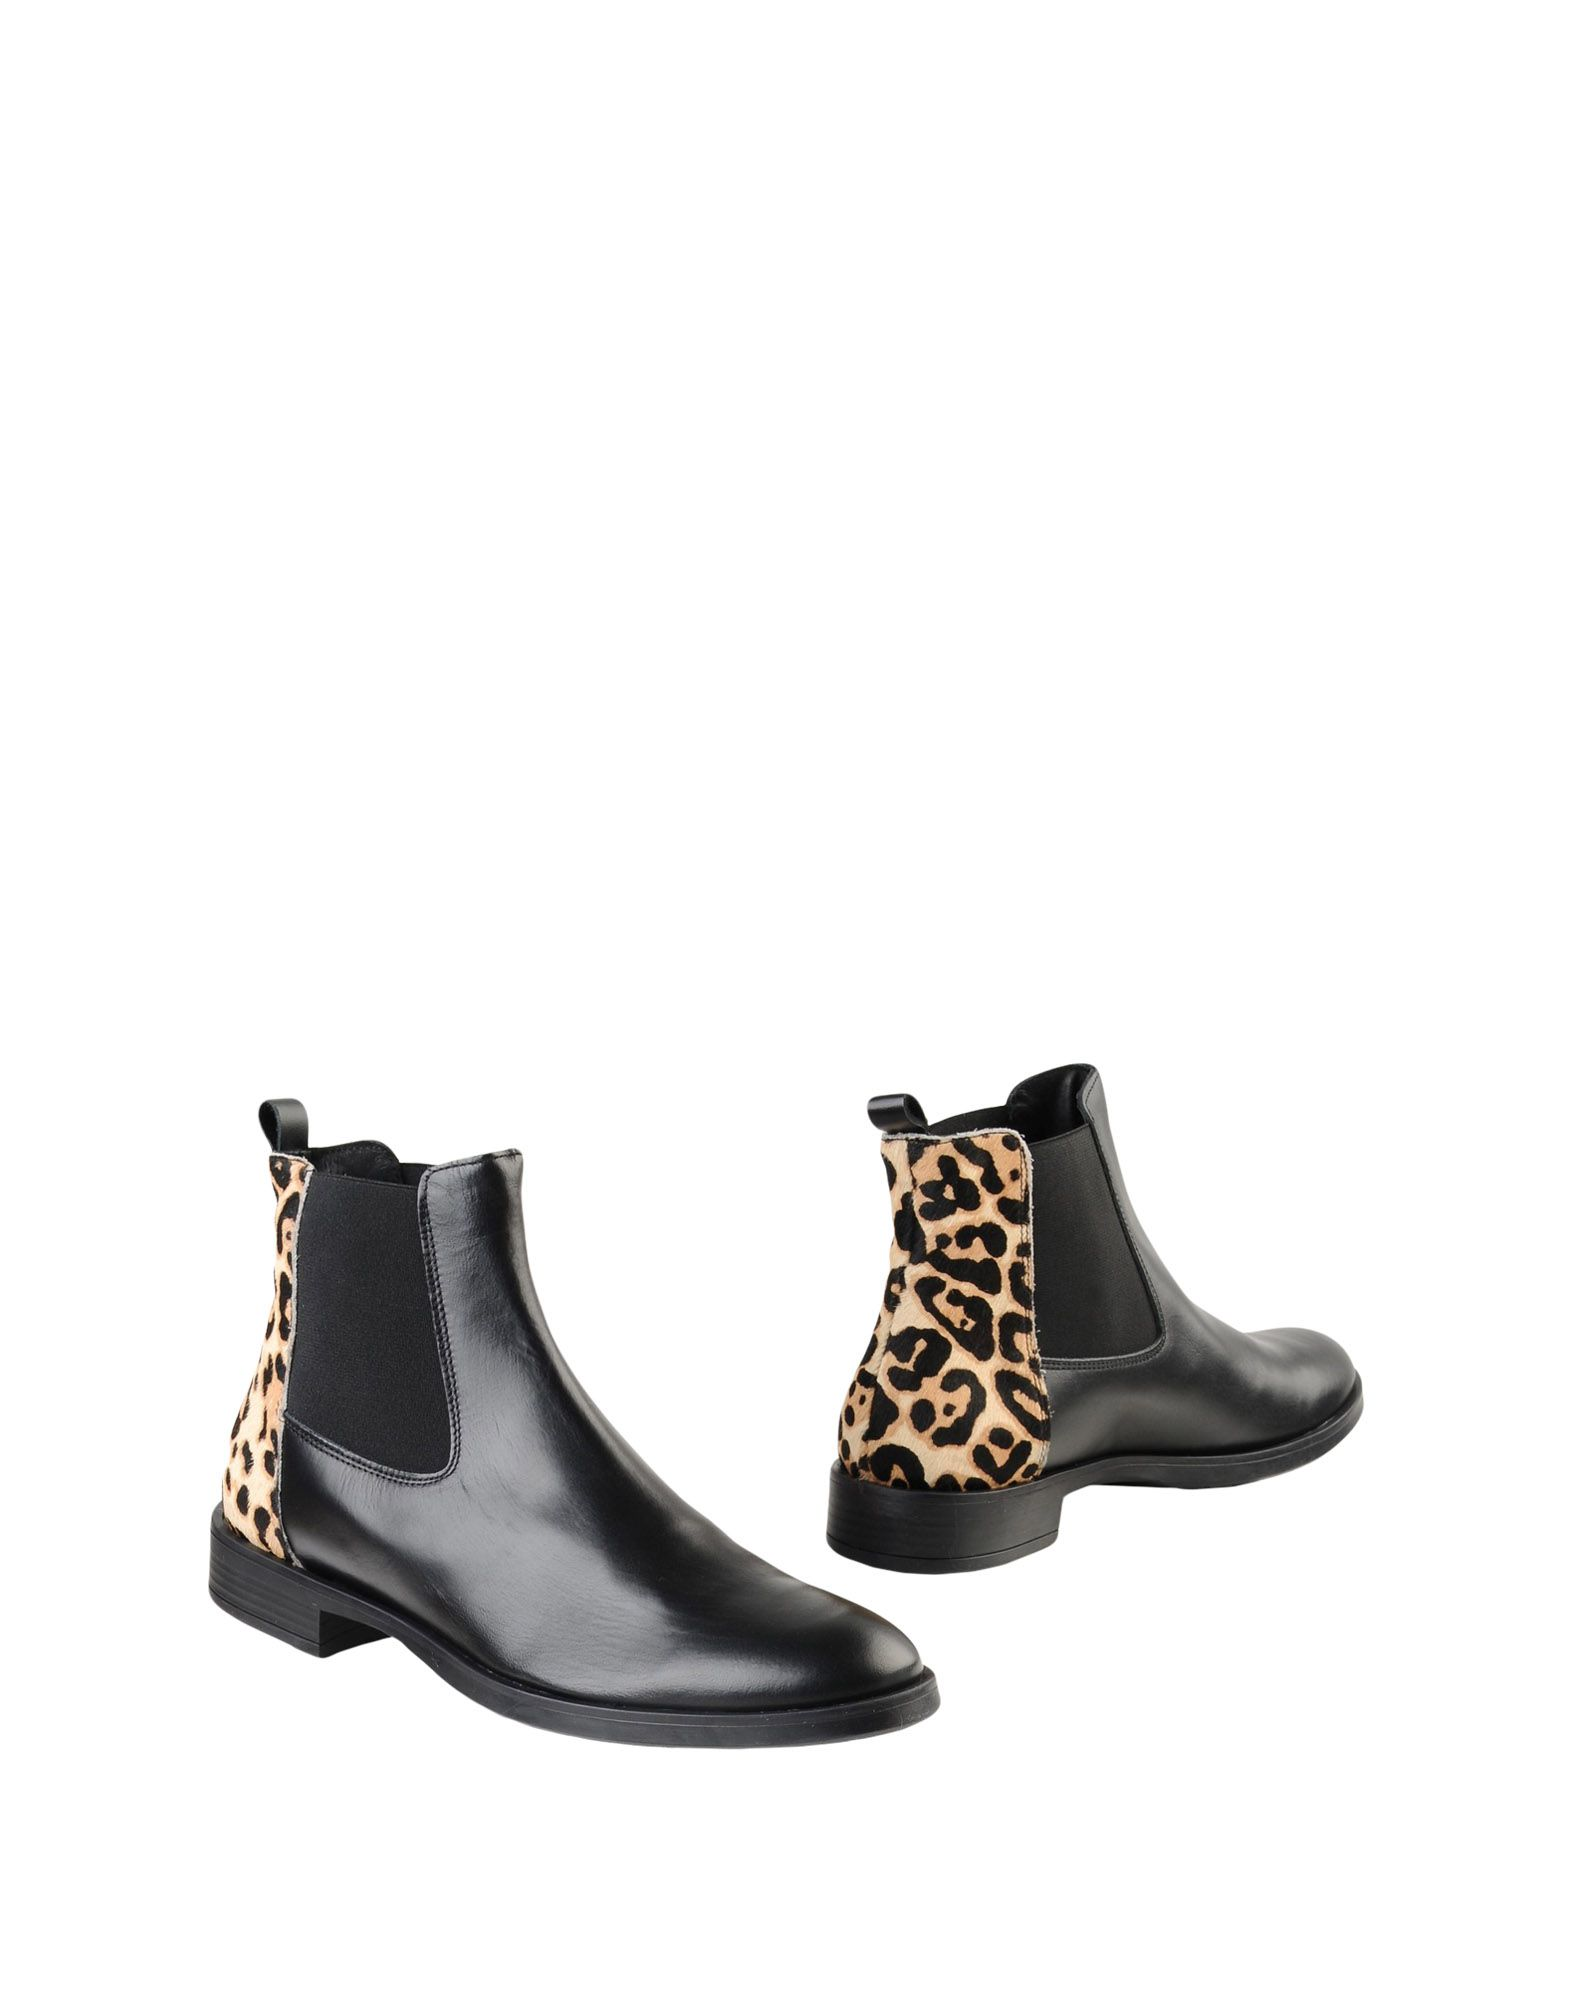 Jolie By Edward Spiers Ankle Boot - Spiers Women Jolie By Edward Spiers - Ankle Boots online on  United Kingdom - 11540280GK 1aeef2